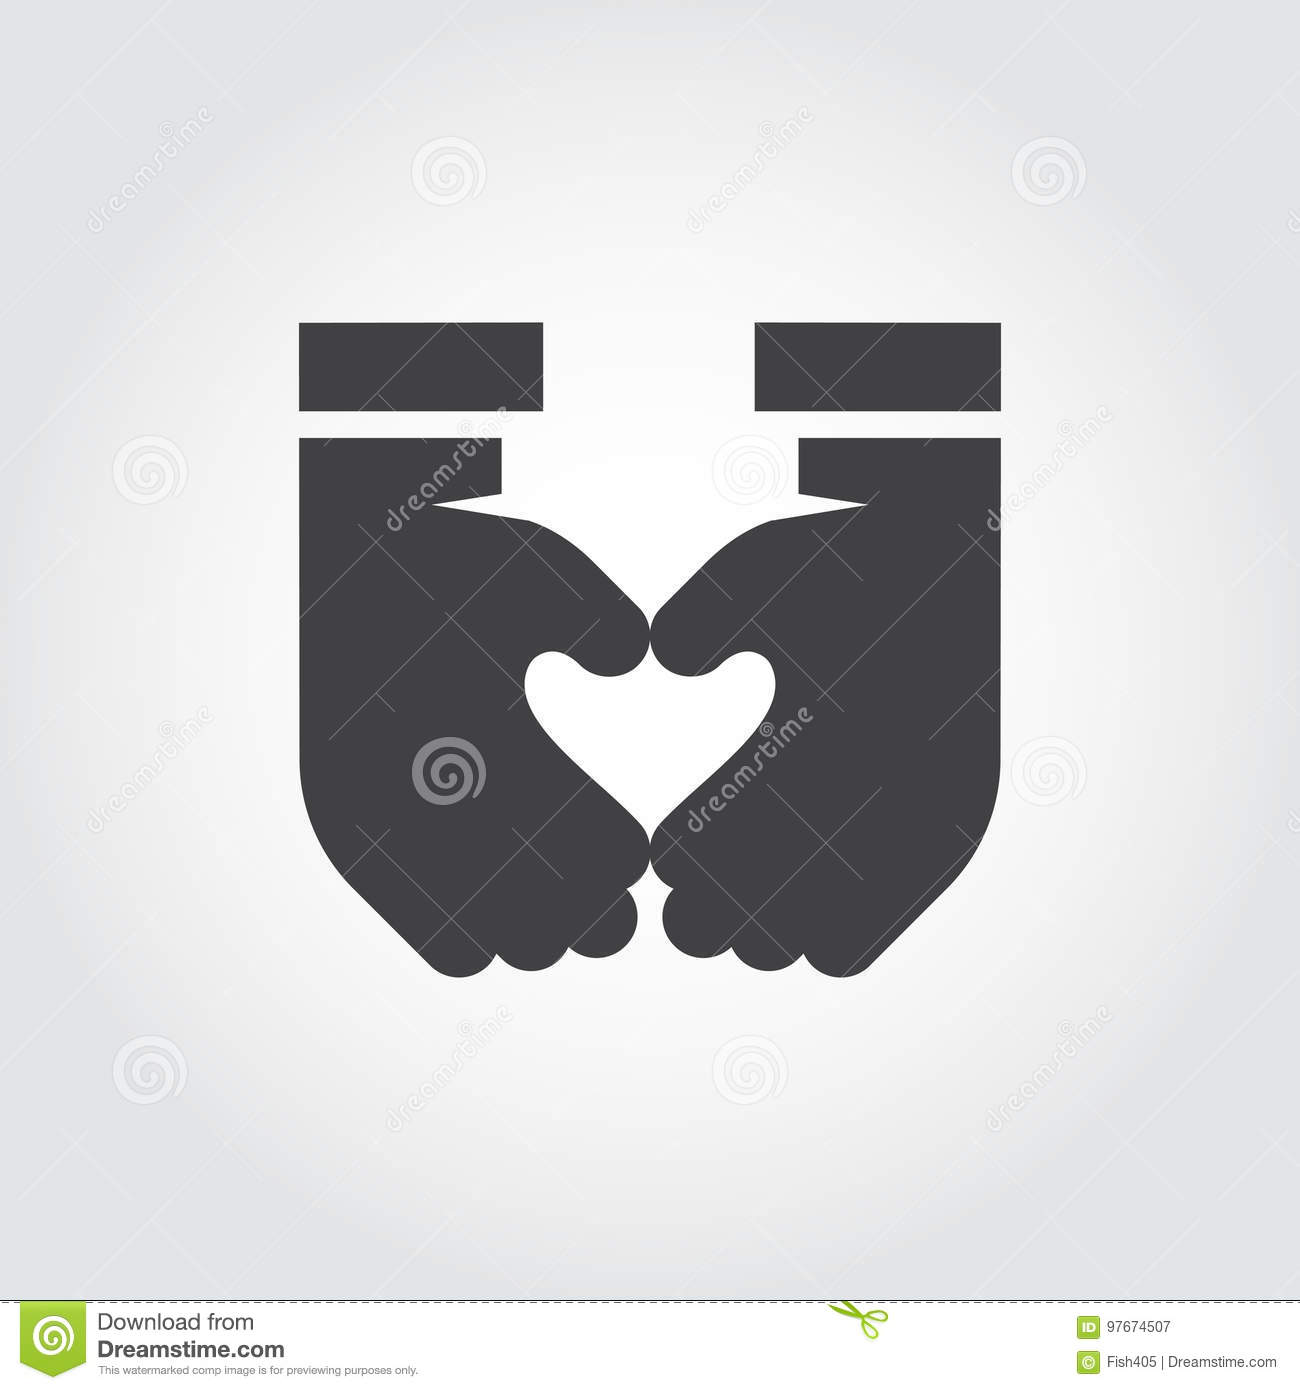 Two Hands Make Heart Shape Black Flat Icon Symbol Love Romance